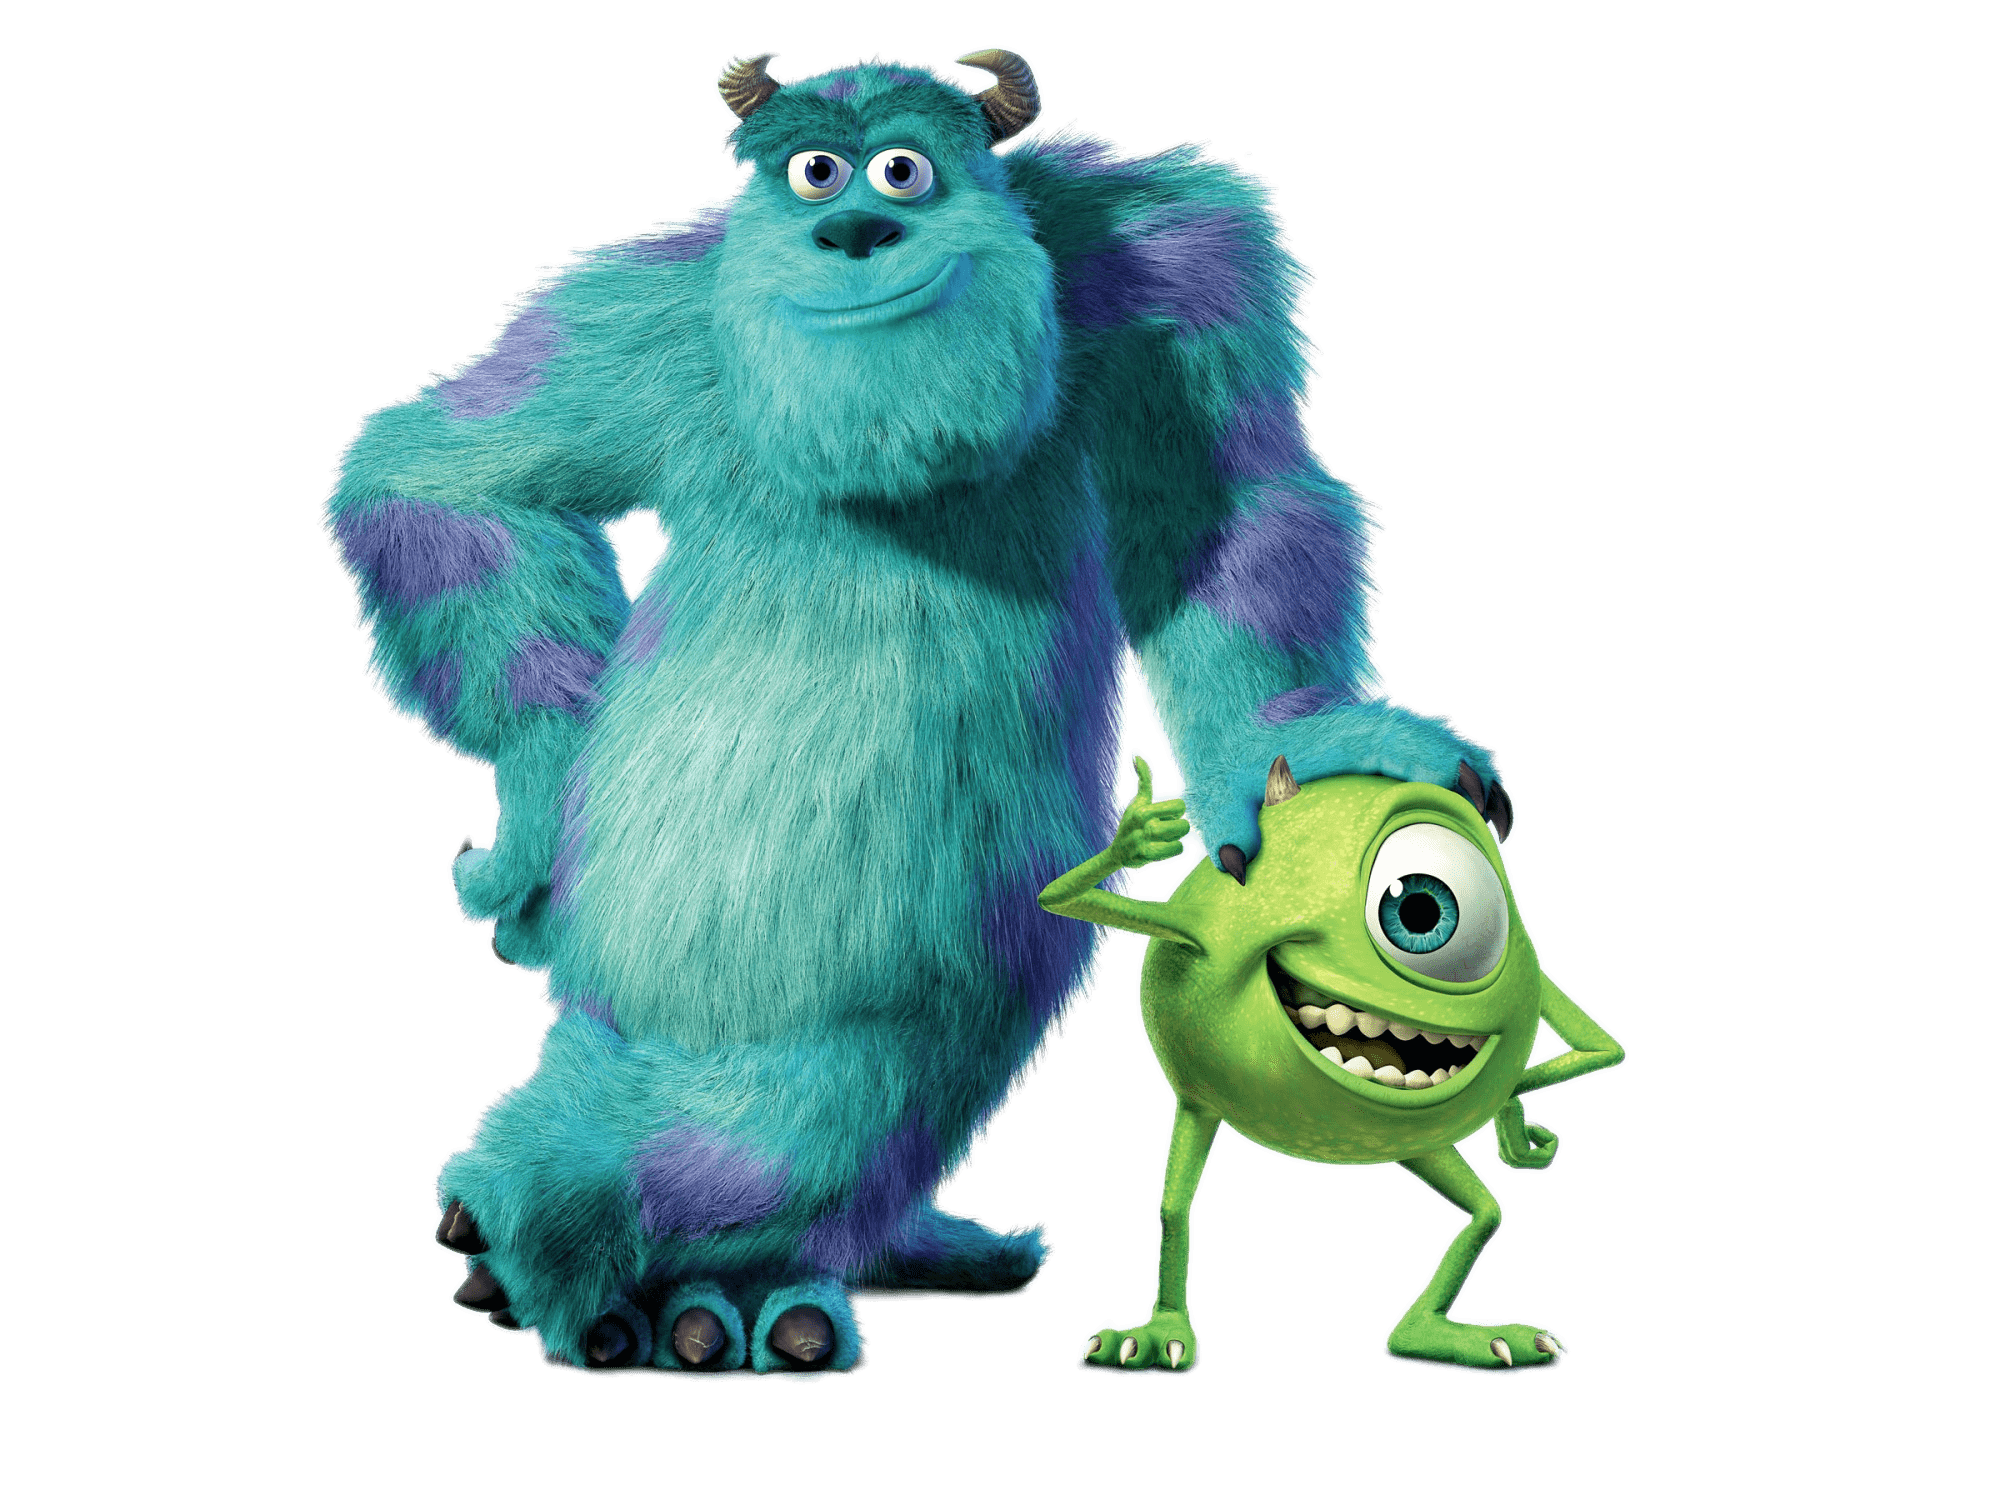 Mike & Sully Monsters inc characters, Monsters inc, Mike